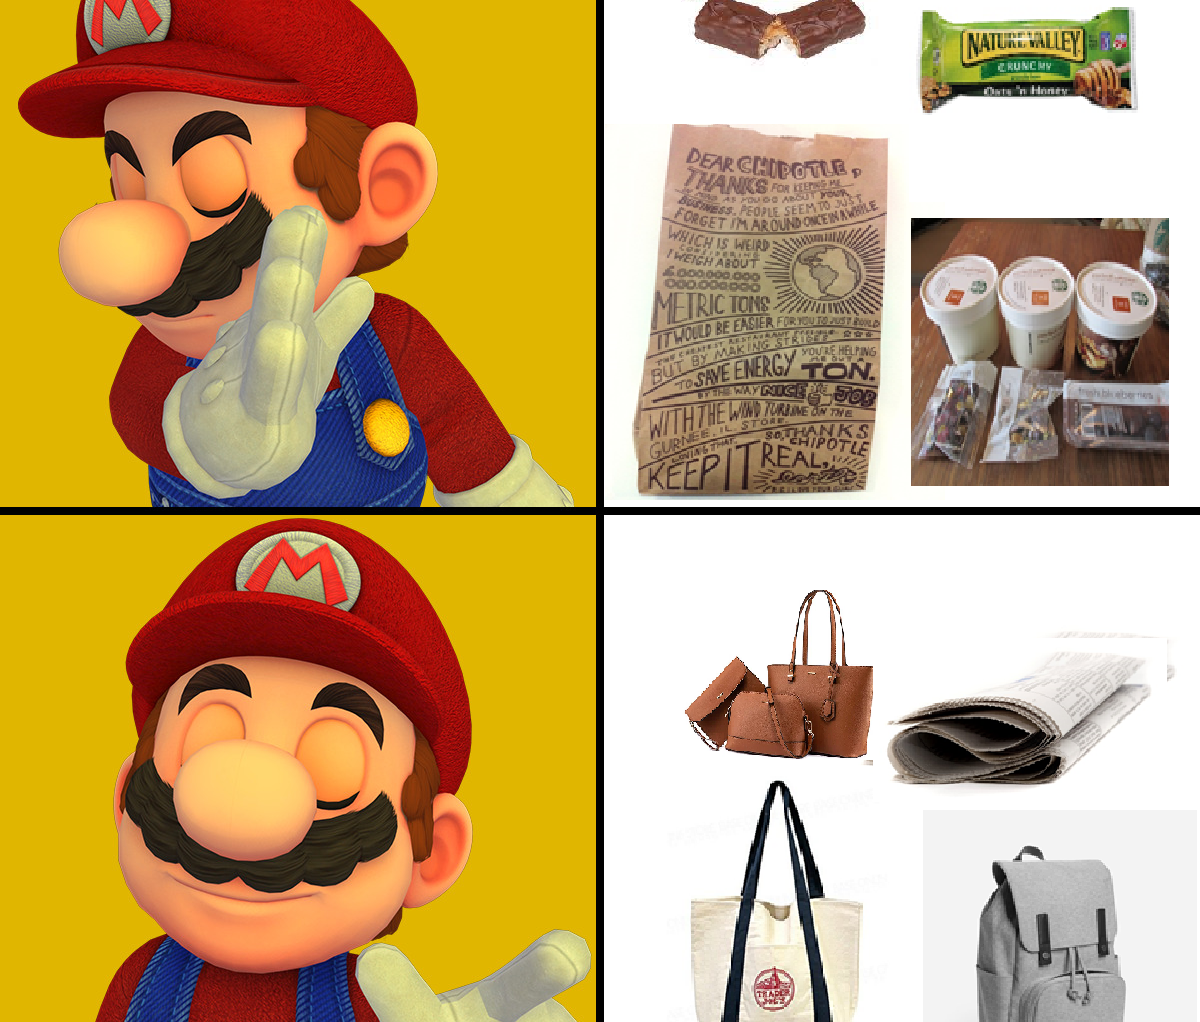 """Mario meme. He says """"no"""" to visible food. He says """"yes"""" to food hidden in bags, jackets, and newspapers."""